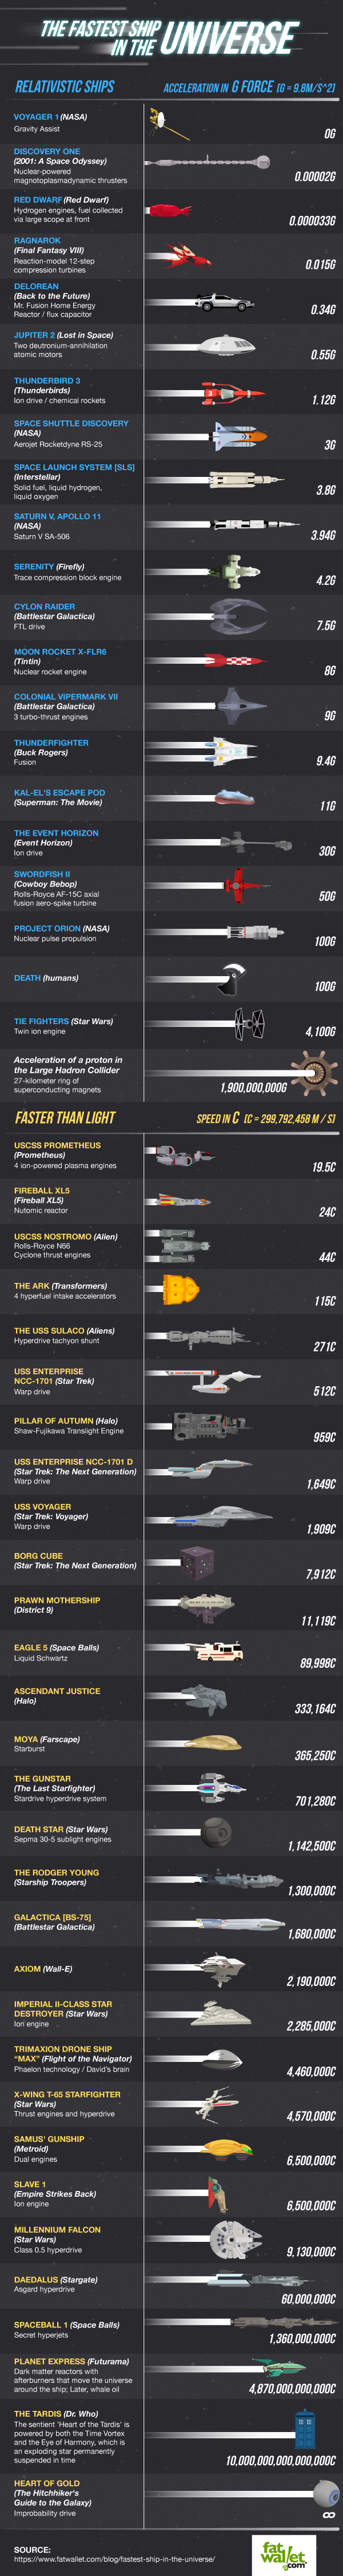 what is the fastest ship in the universe, infographic depicting speeds of real and fictional space ships